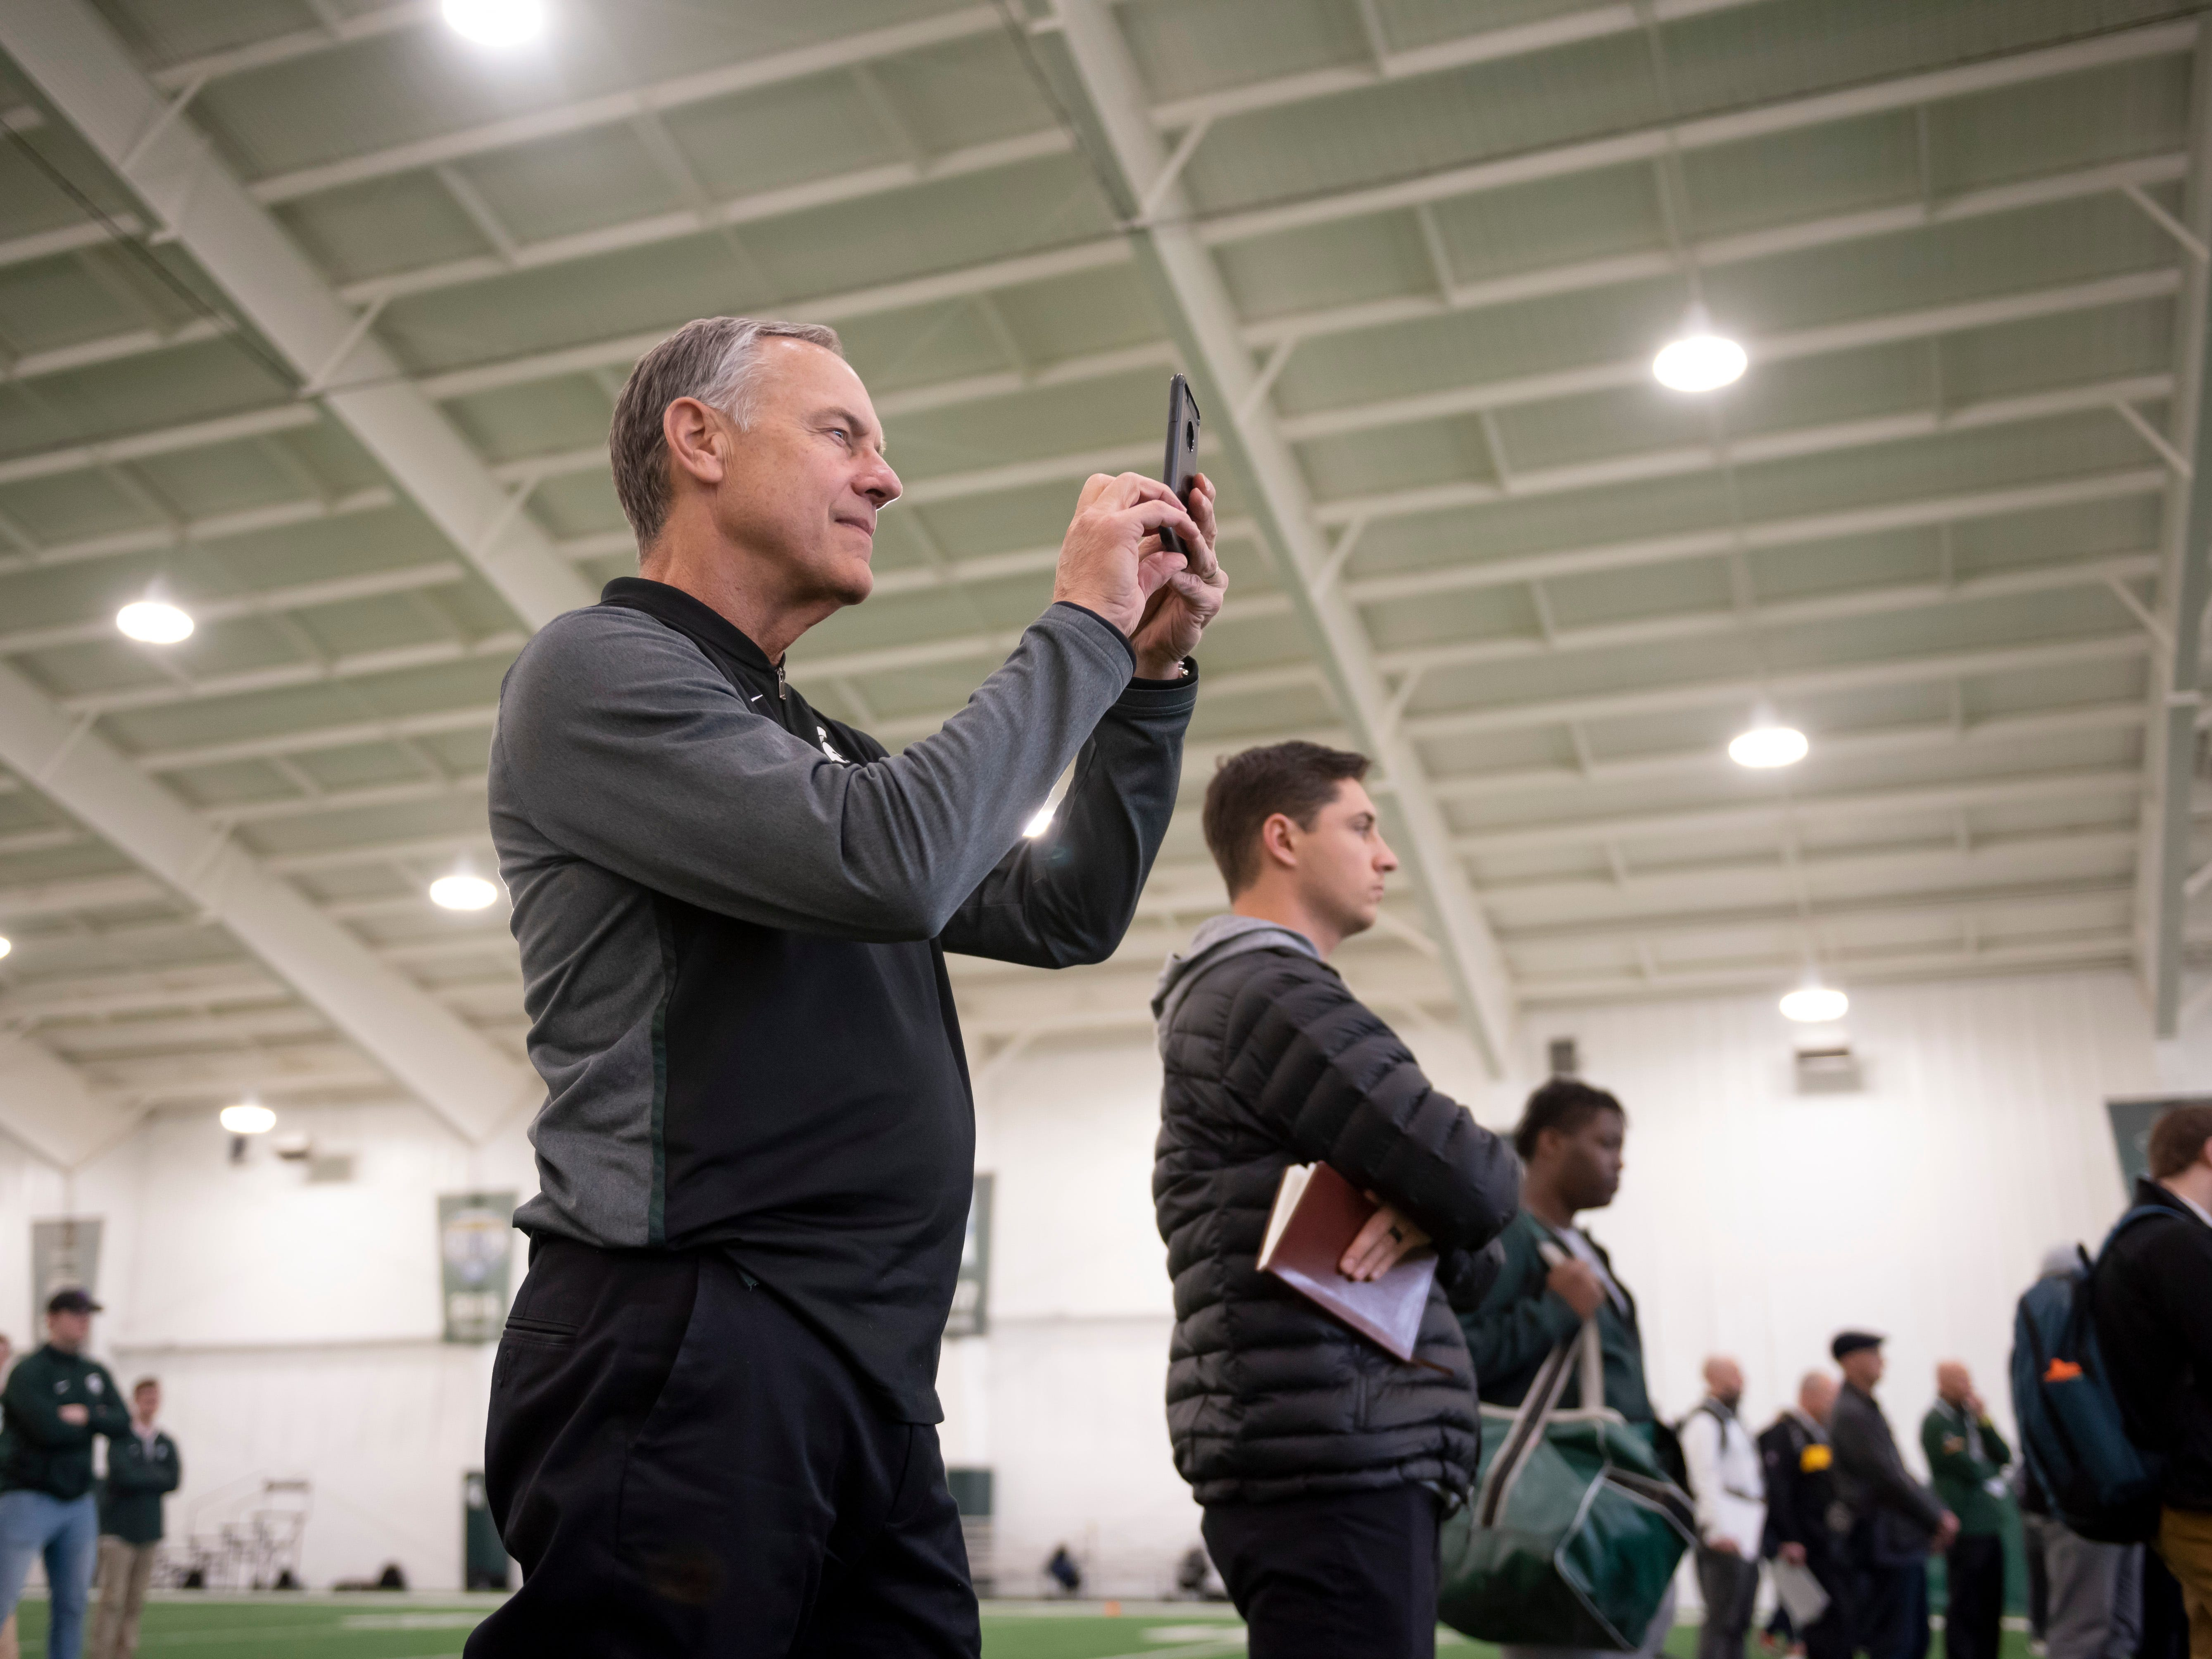 Michigan State head coach Mark Dantonio takes photos of his players during an NFL pro day at the Duffy Daugherty Football facility.